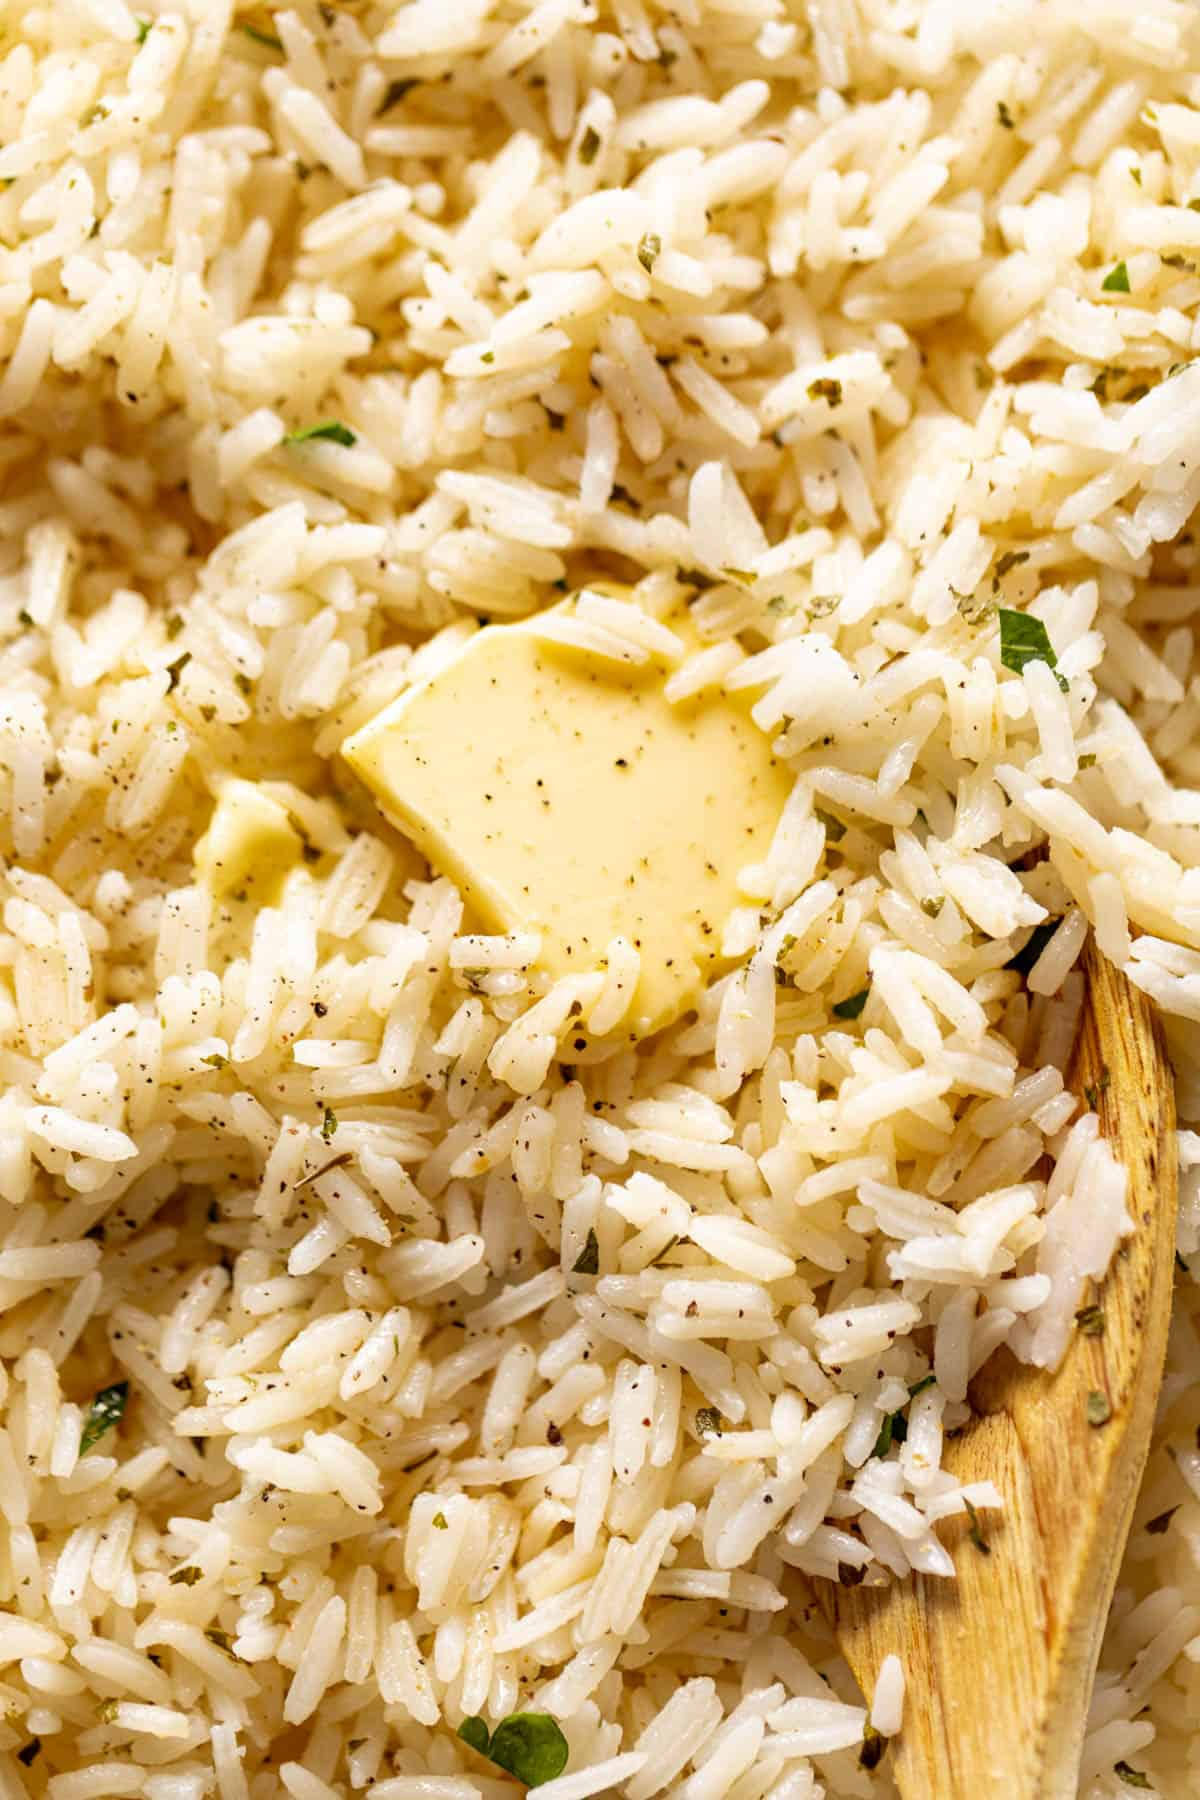 Garlic Butter Rice served with melted butter and cracked black pepper | craveitall.com